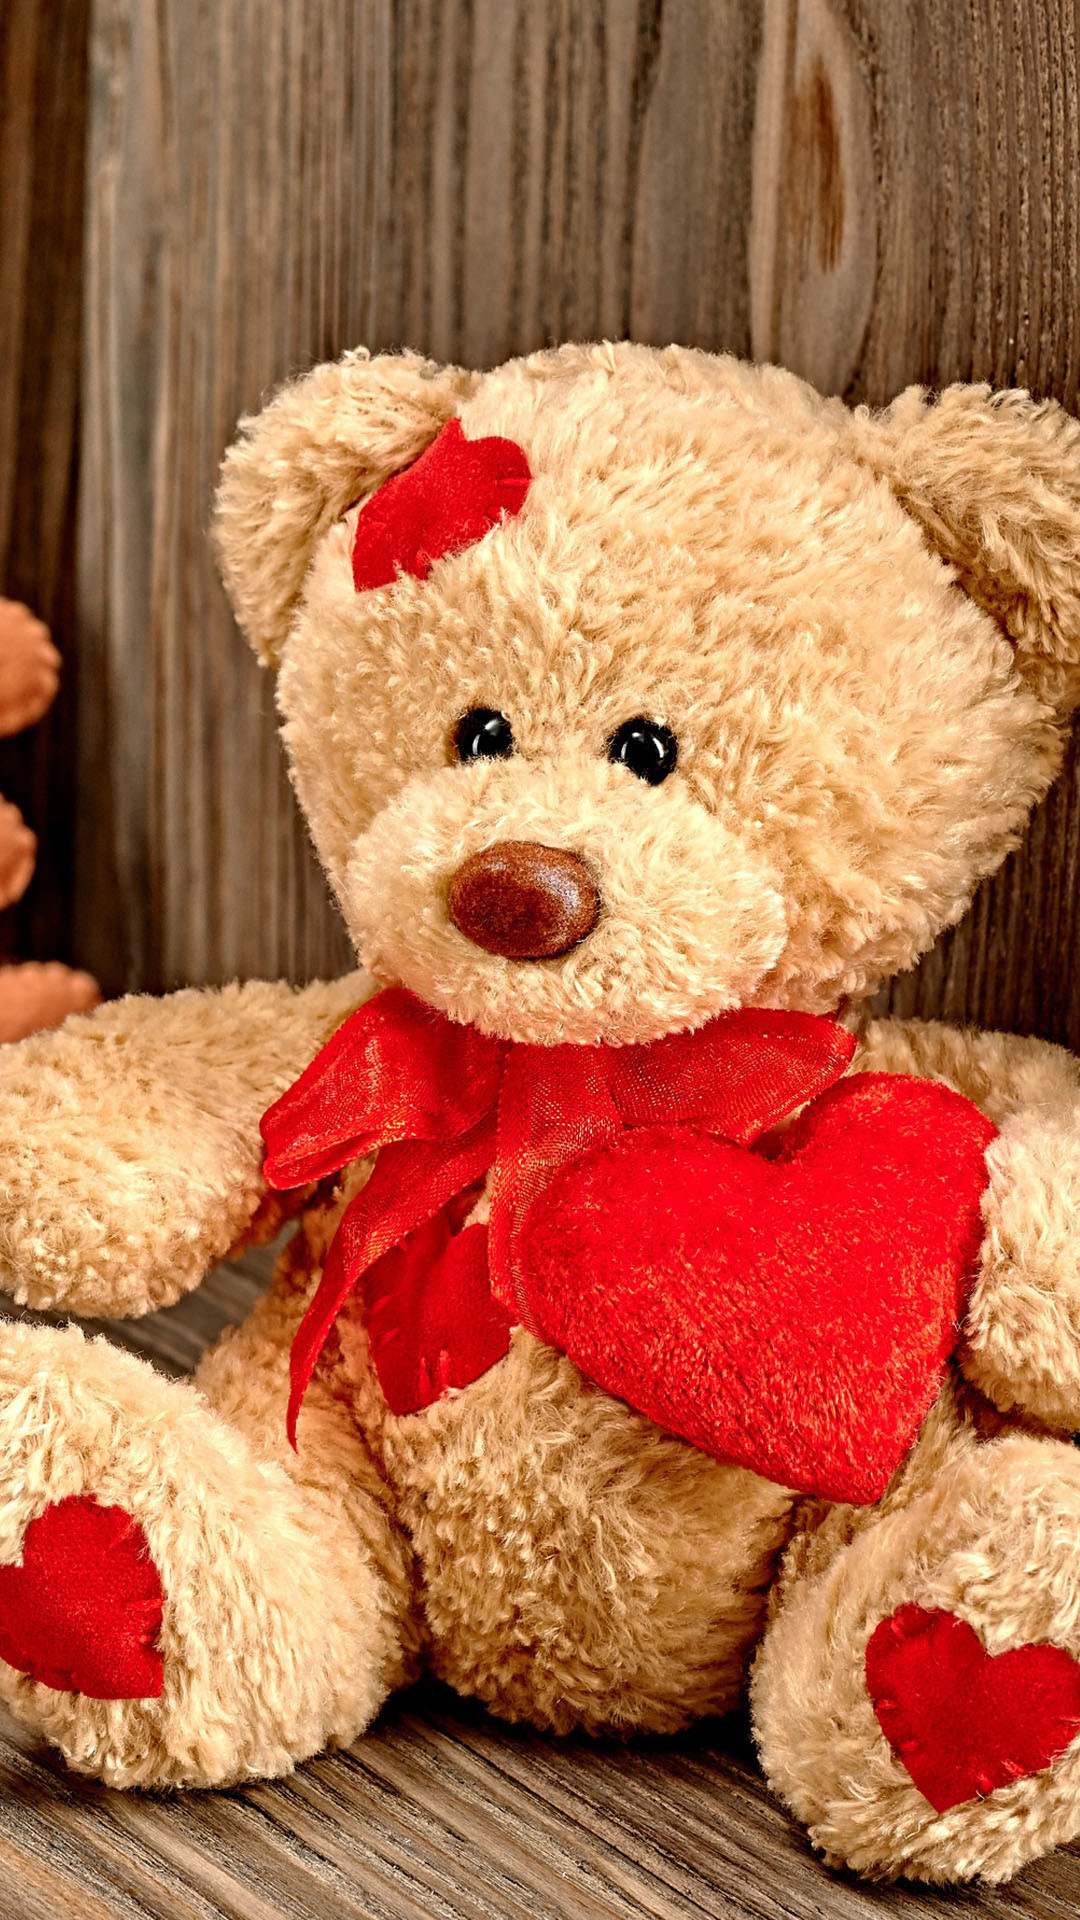 Teddy Bear Love iPhone 6 and 6 Plus HD Wallpapers | Daily iPhone 6